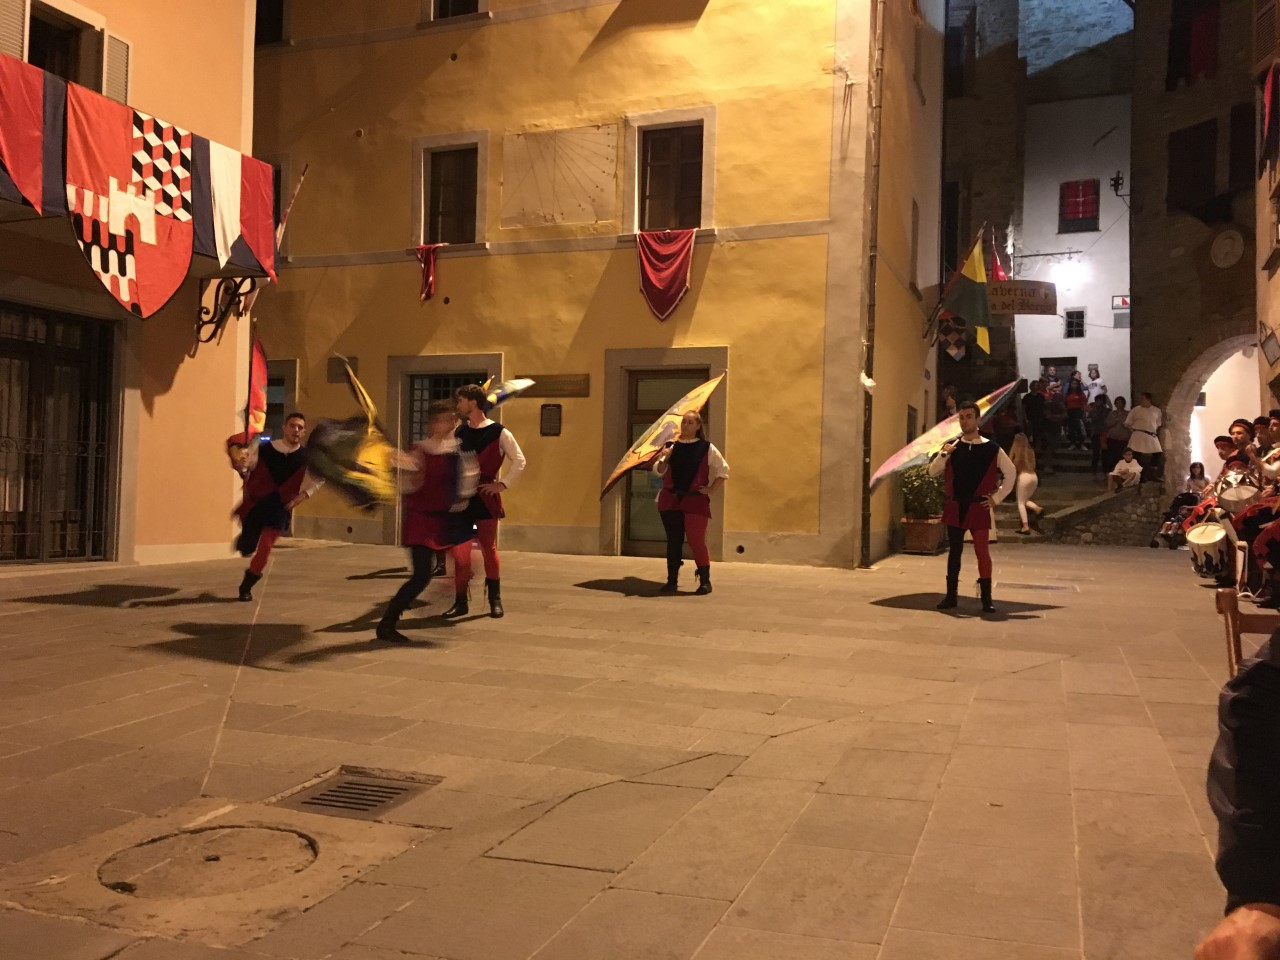 Flag waving at the festival of the donation of the sacred thorn, Piazza Fortebraccio, Montone, Umbria, August 2018